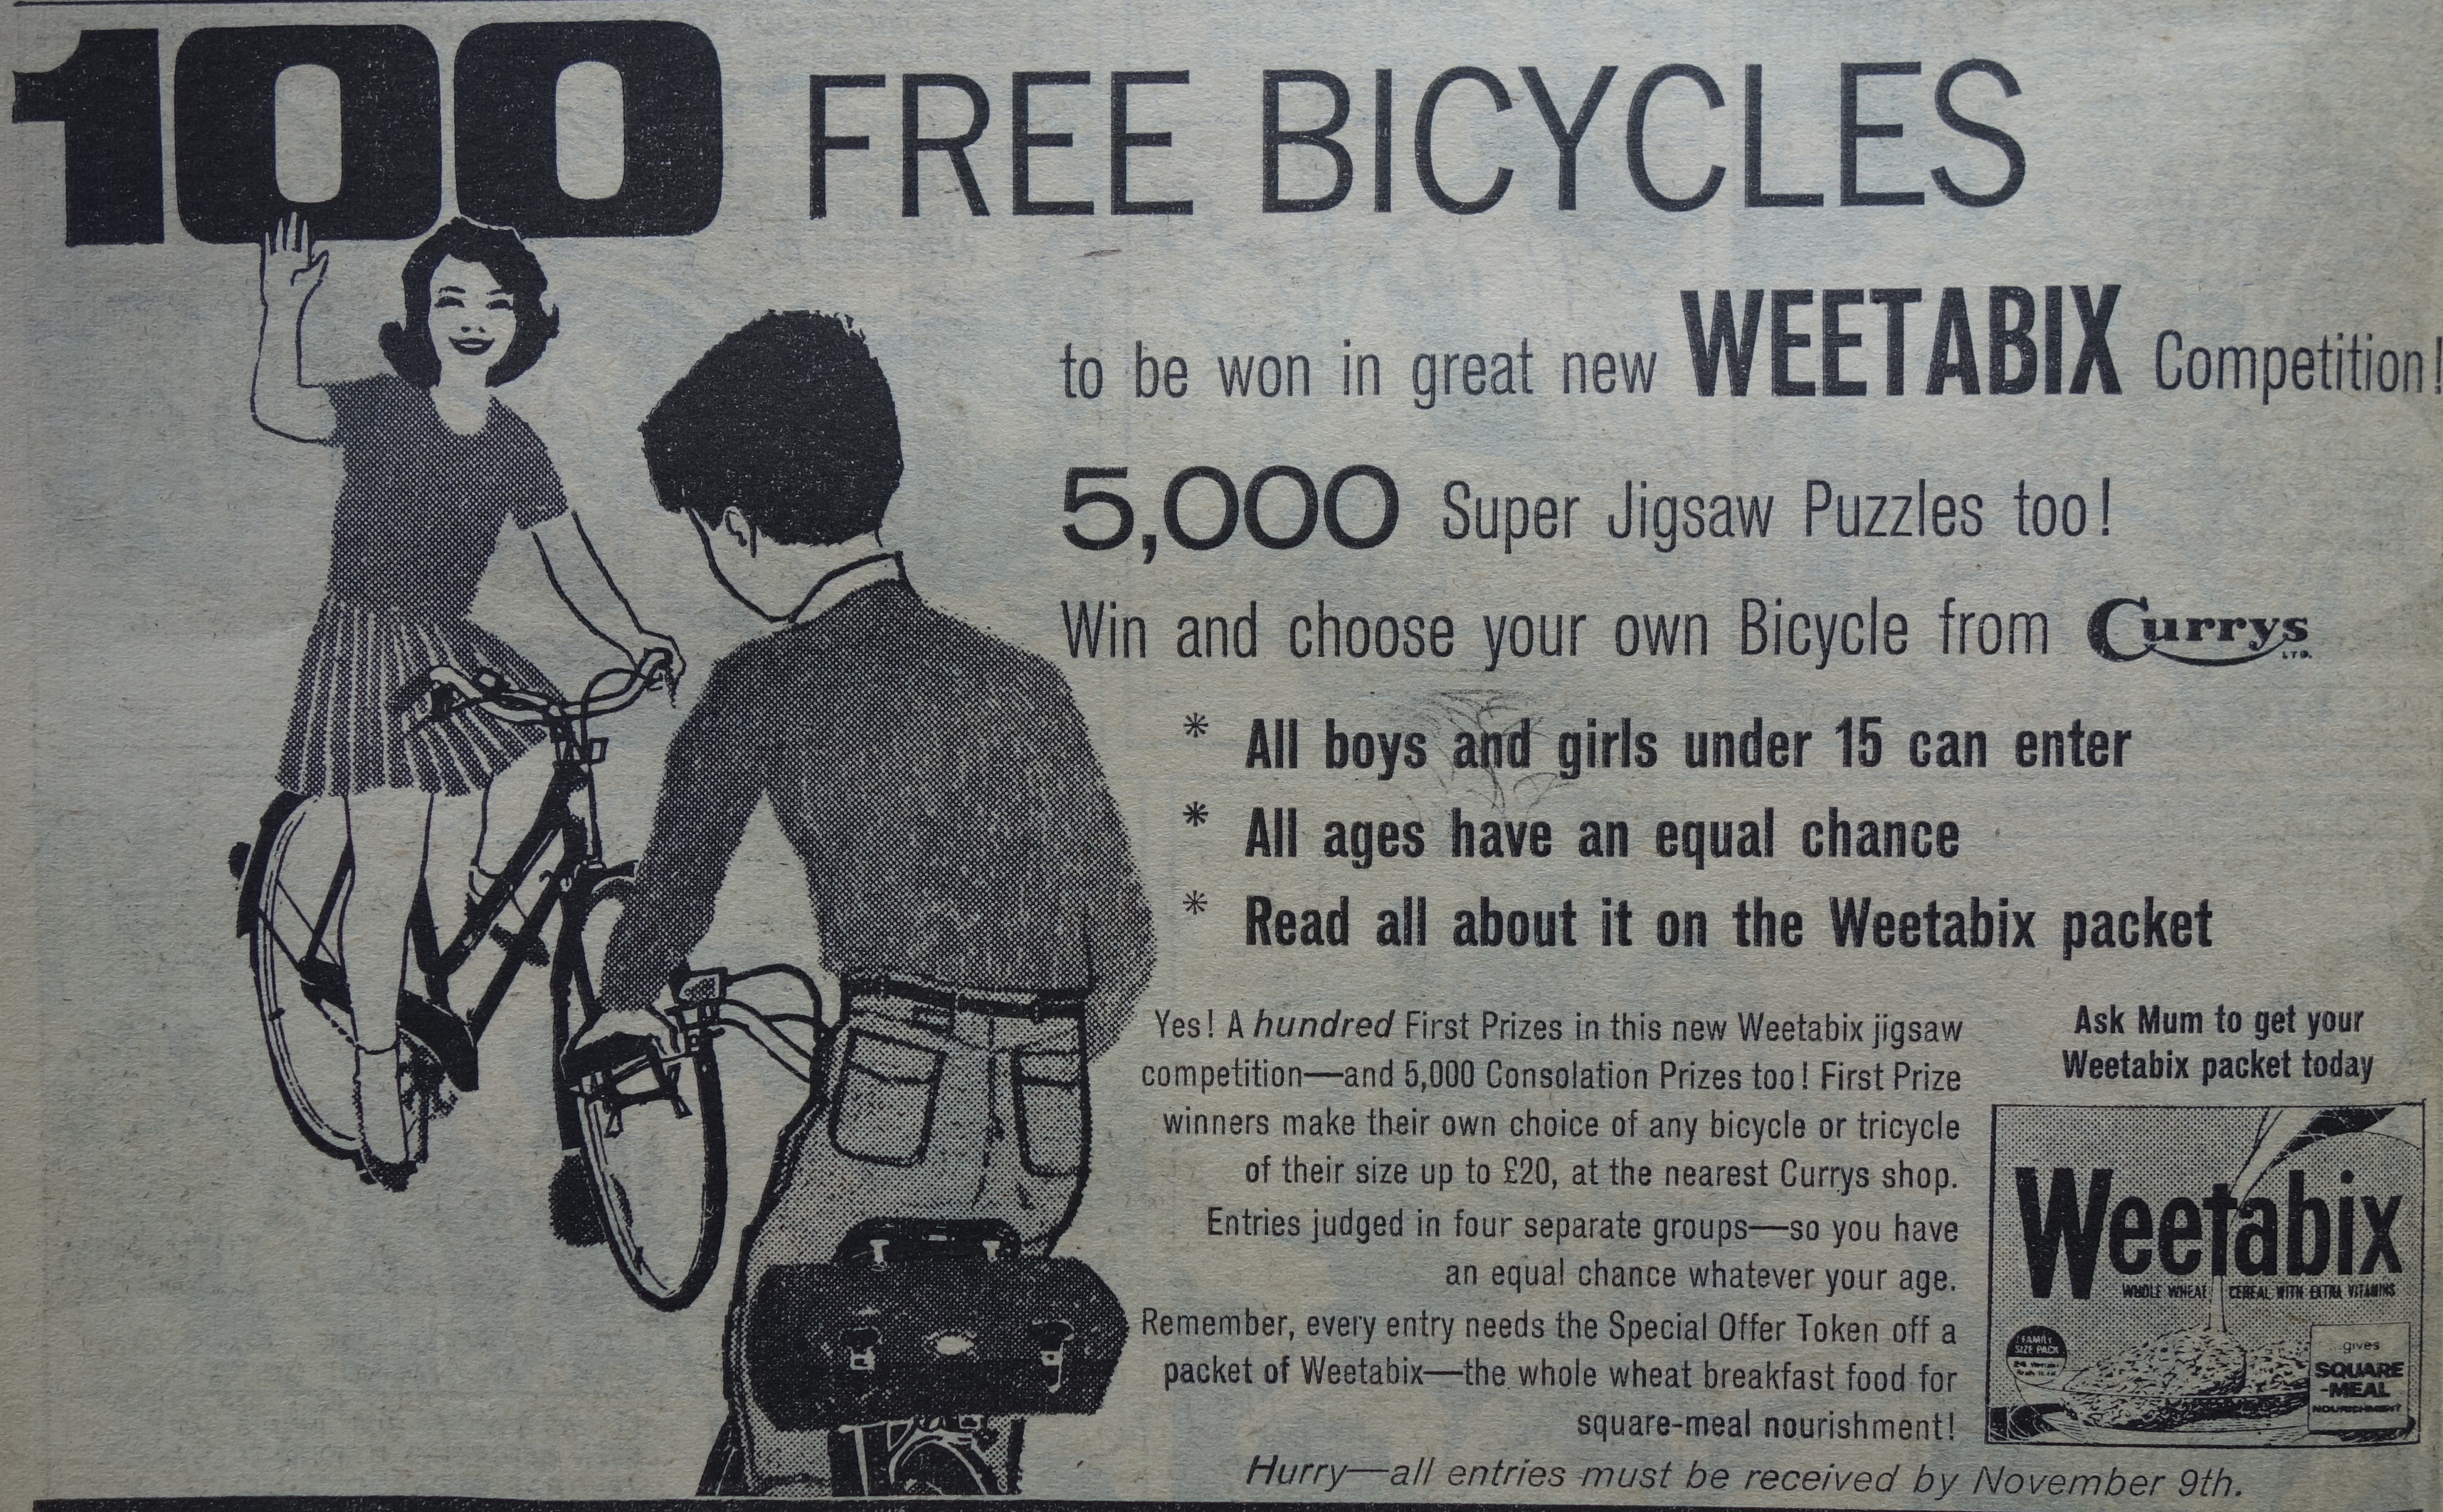 1963 Weetabix Bicycle Competition2